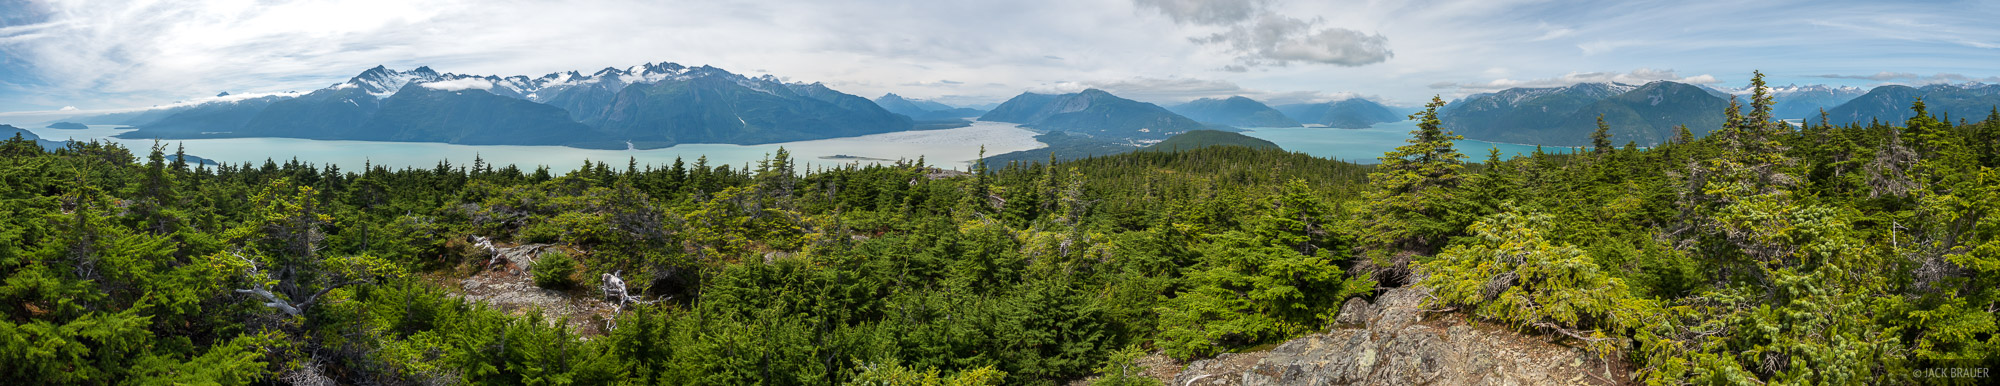 Alaska, Haines, Mount Riley, panorama, Chilkat Inlet, Chilkoot Inlet, photo